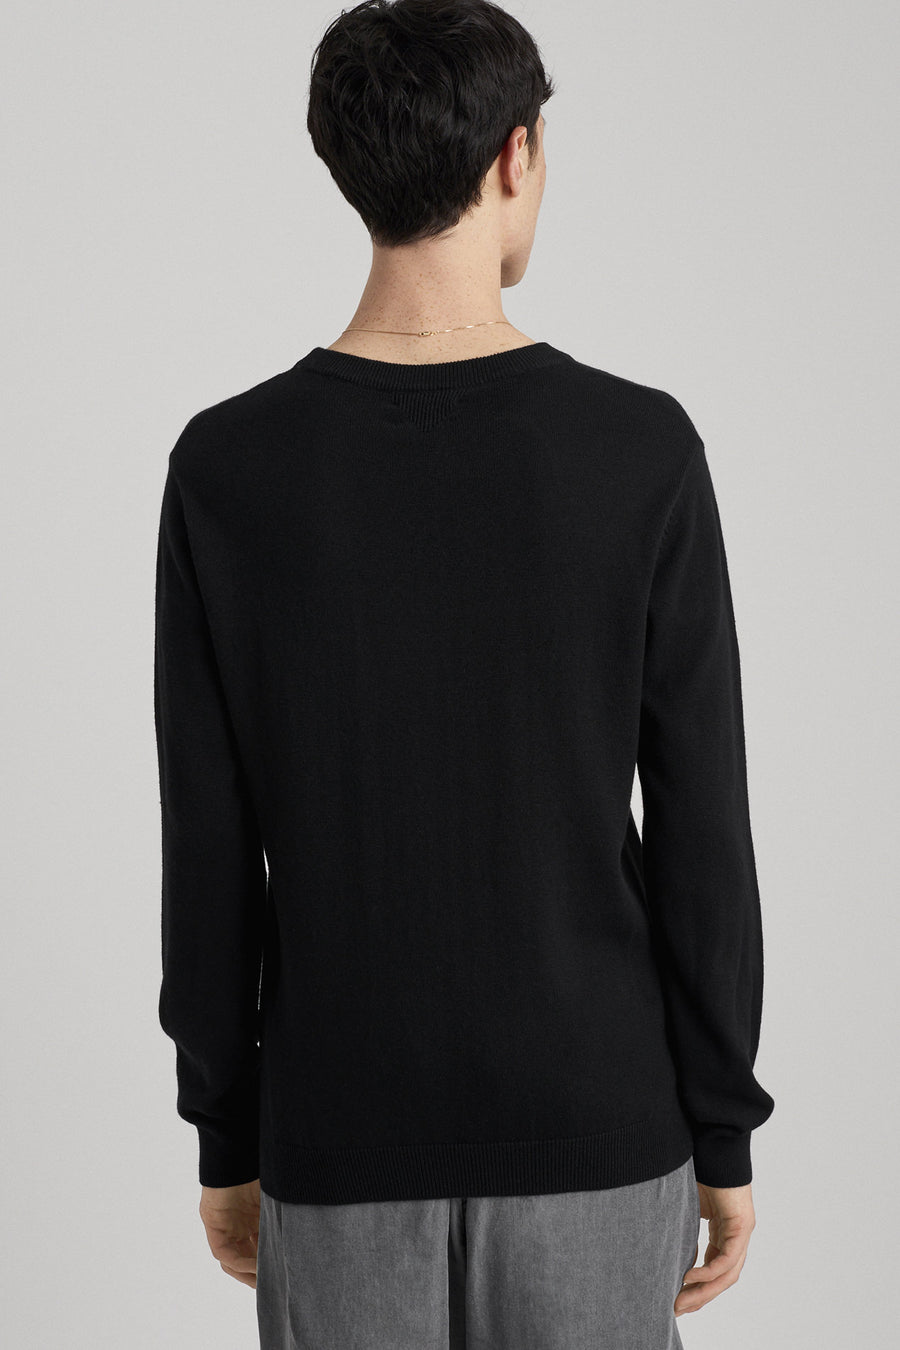 Everyday Classic Sweater - Black - Pavilion